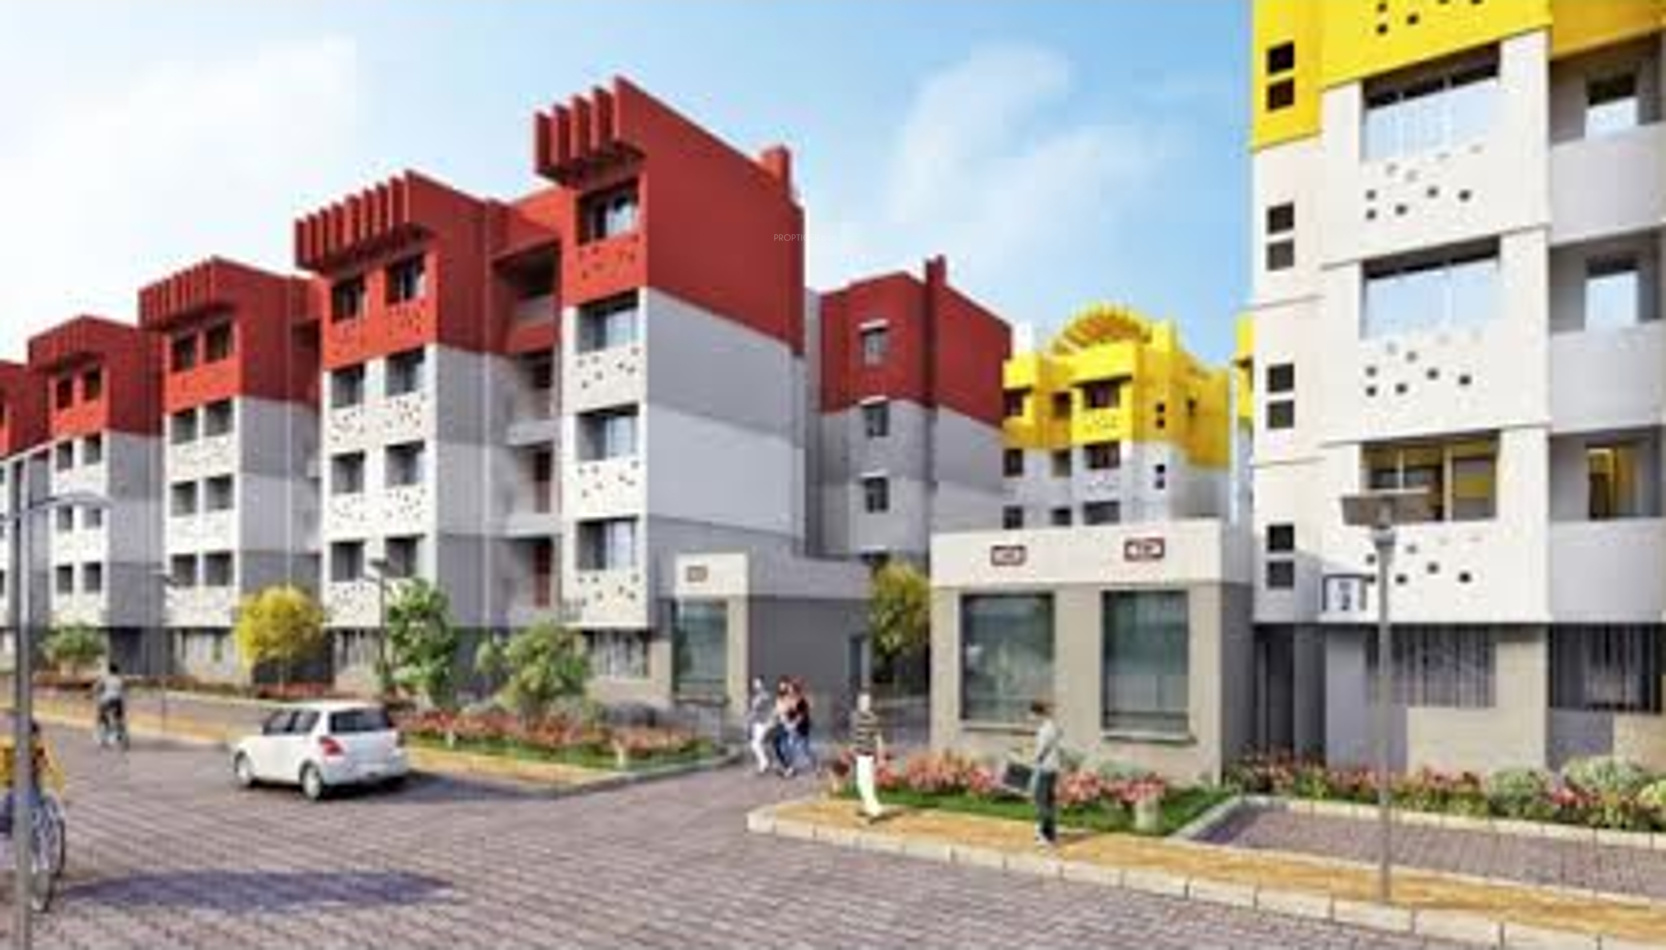 581 sq ft 1 BHK 1T Apartment for Sale in Narang ...